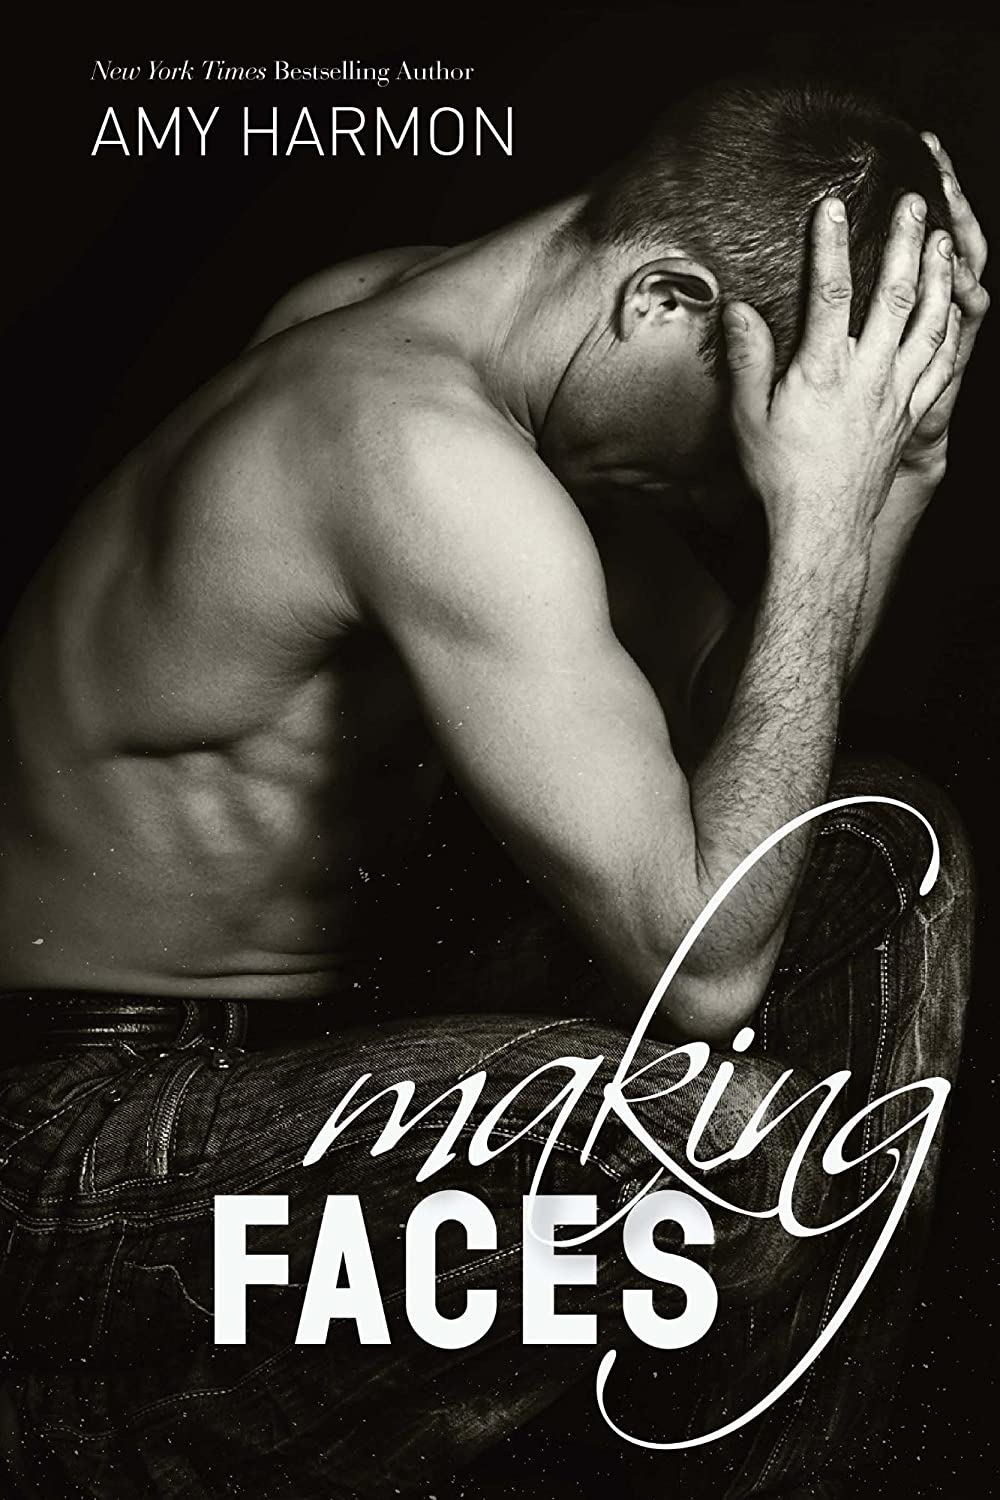 http://www.amazon.it/Making-Faces-English-Amy-Harmon-ebook/dp/B00F0XL3B2/ref=sr_1_1?s=digital-text&ie=UTF8&qid=1418155576&sr=1-1&keywords=making+faces+amy+harmon